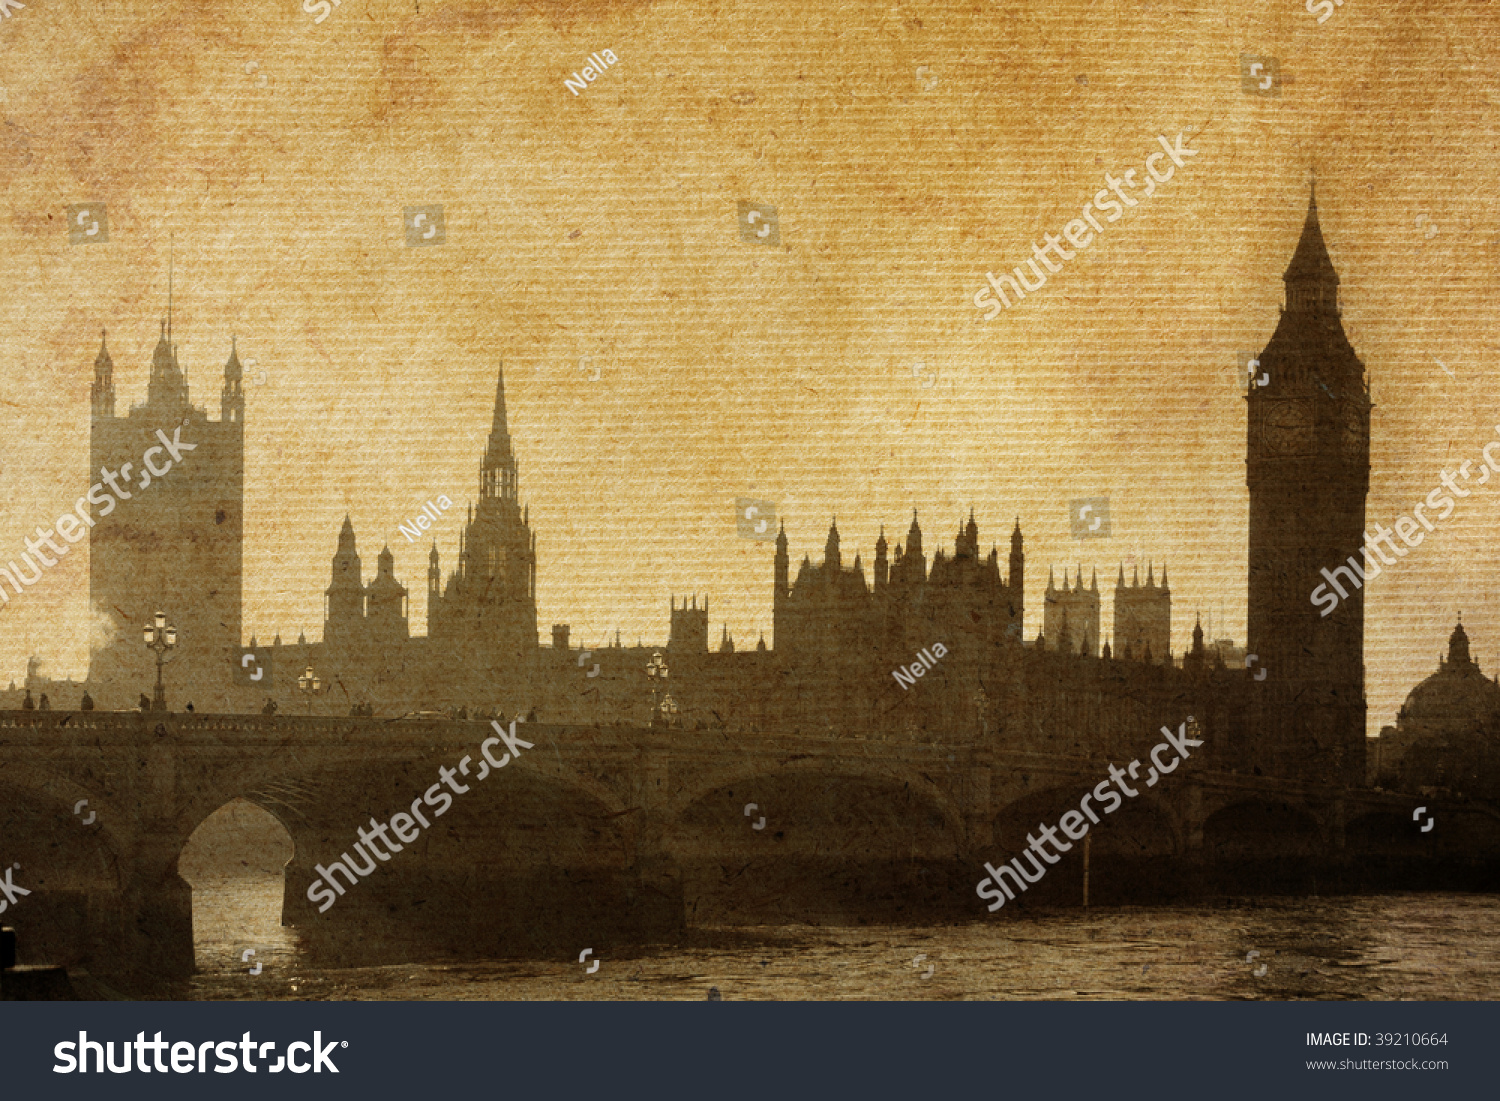 big view photography. Buildings Of Parliament With Big Ben Tower In London UK View From Photography